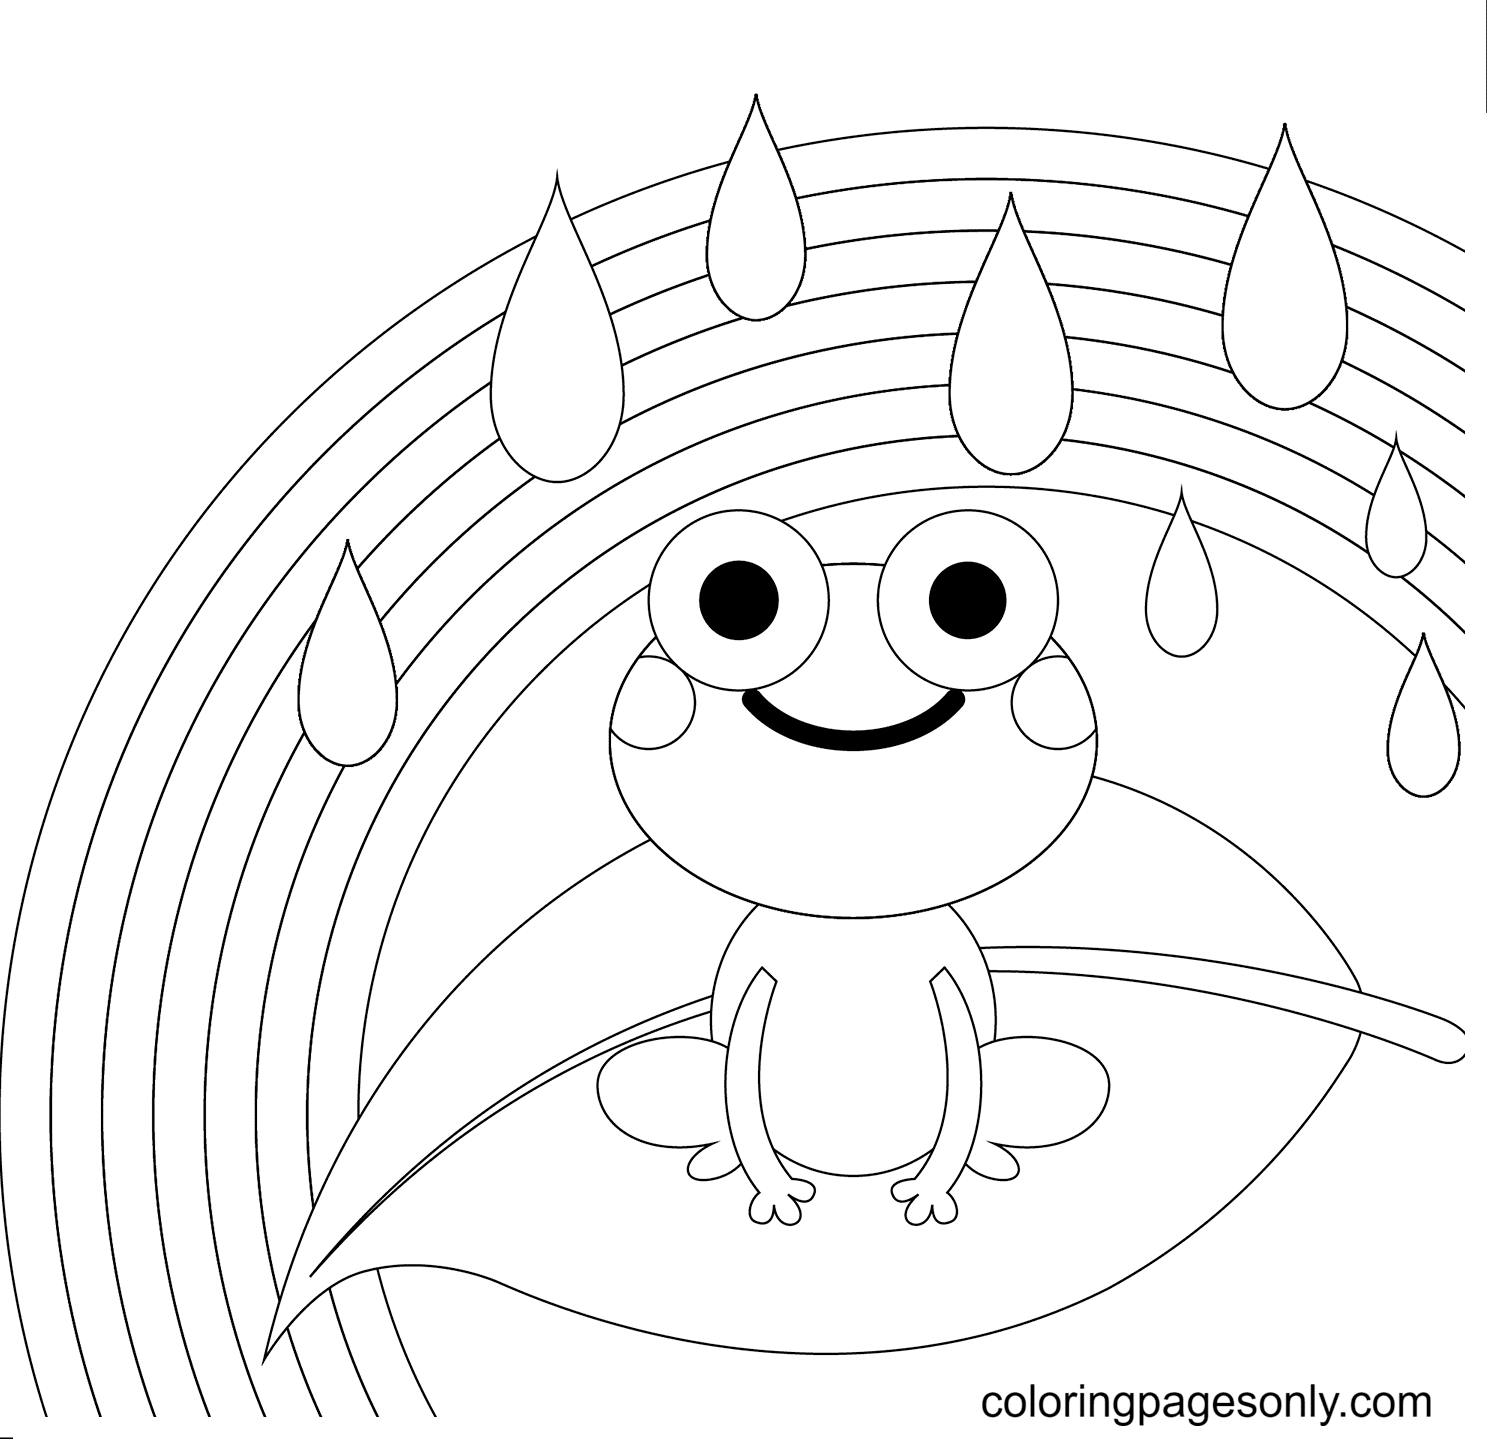 Rainbow and Frog Coloring Page